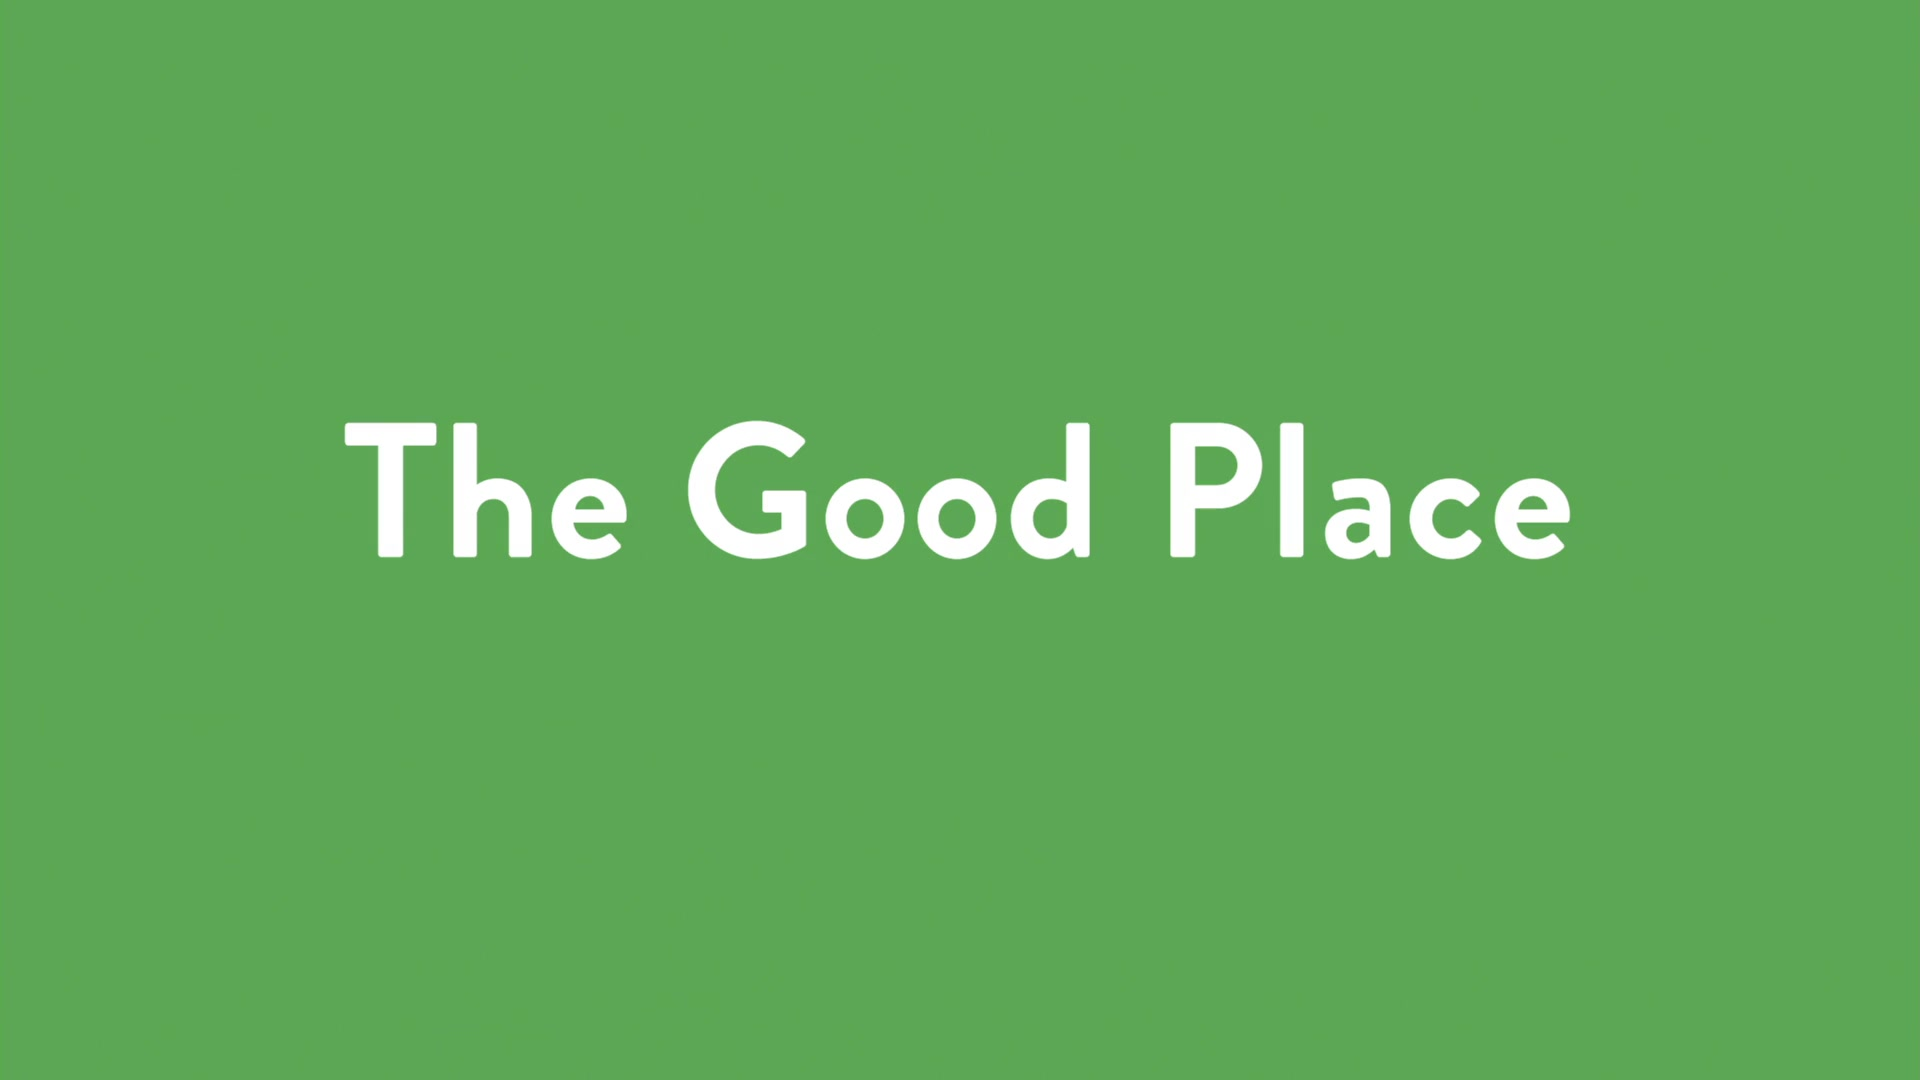 The Good Place S03E11